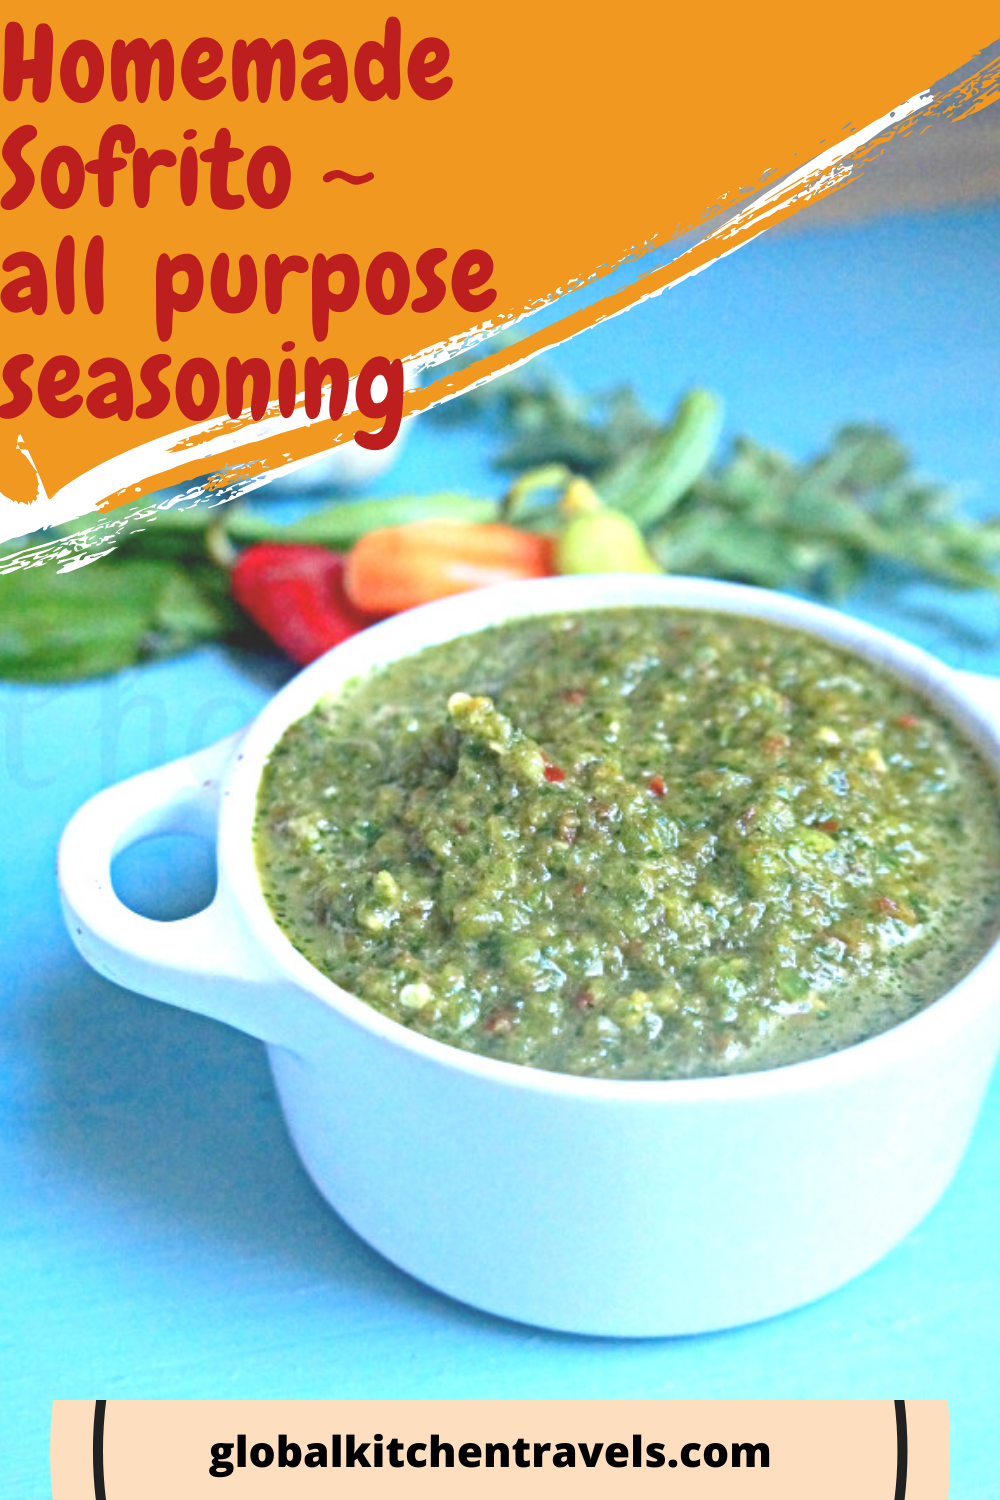 bowl of sofrito with text